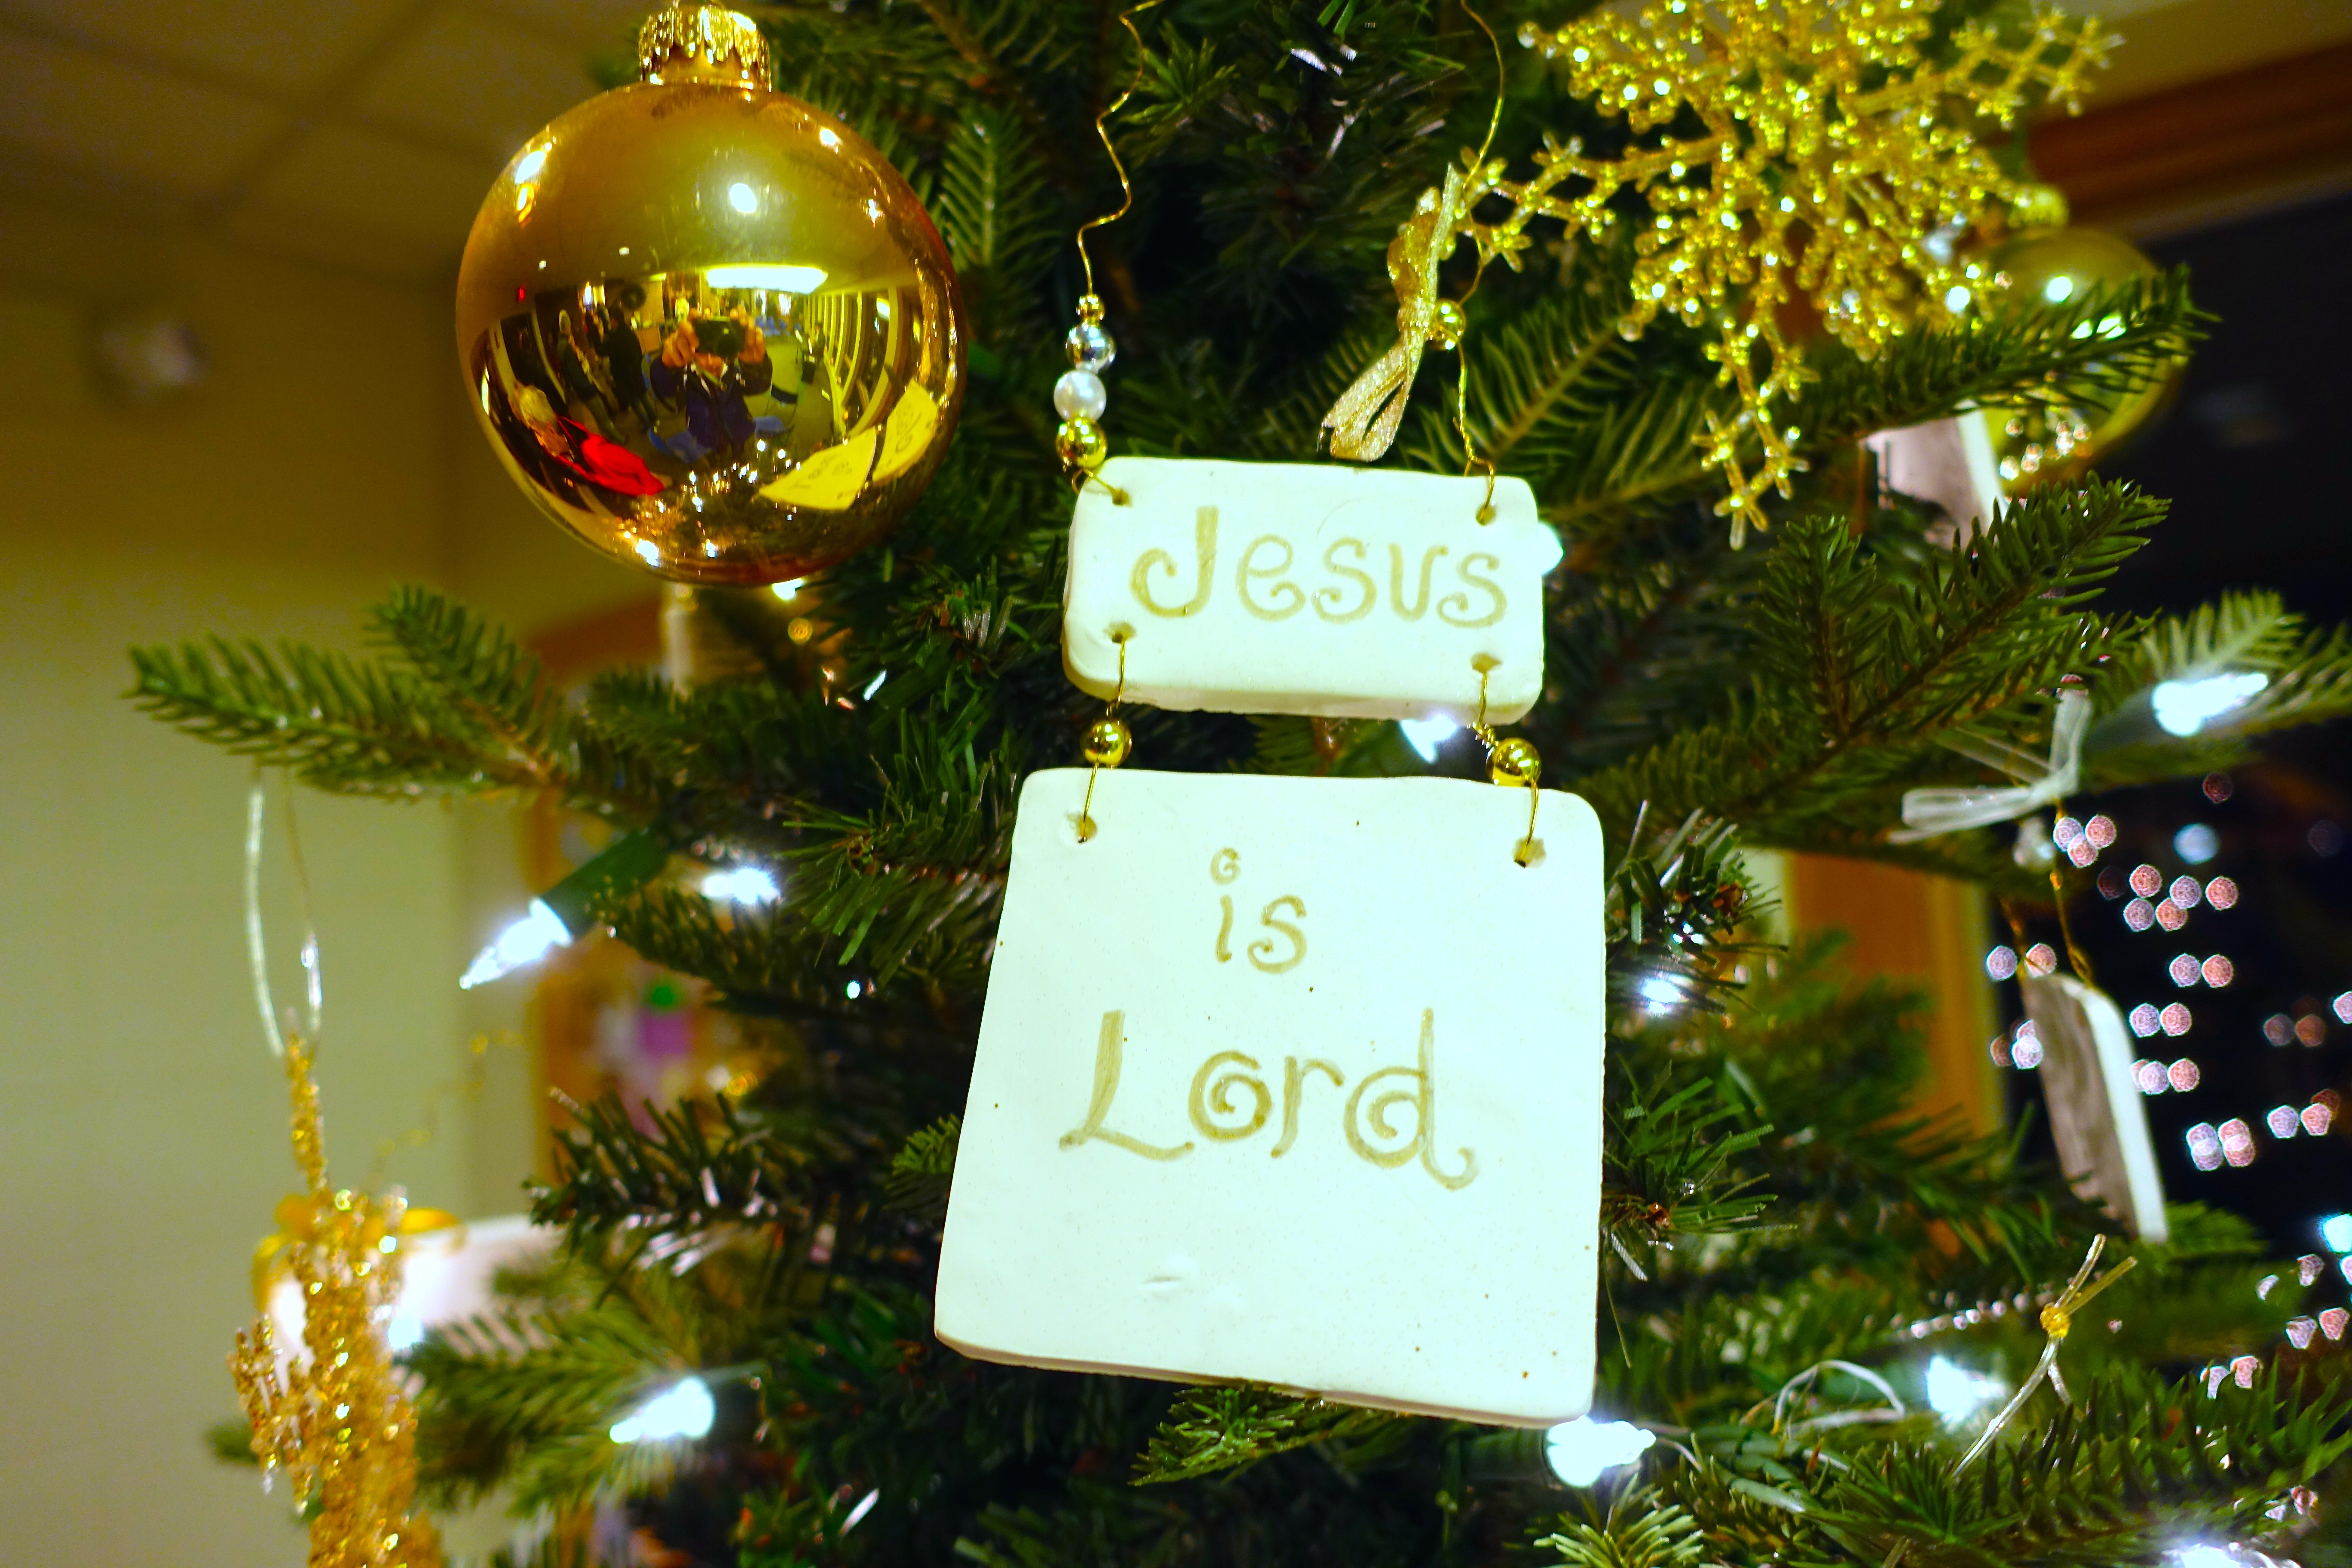 Camera christmas ornaments - Jesus Is Lord